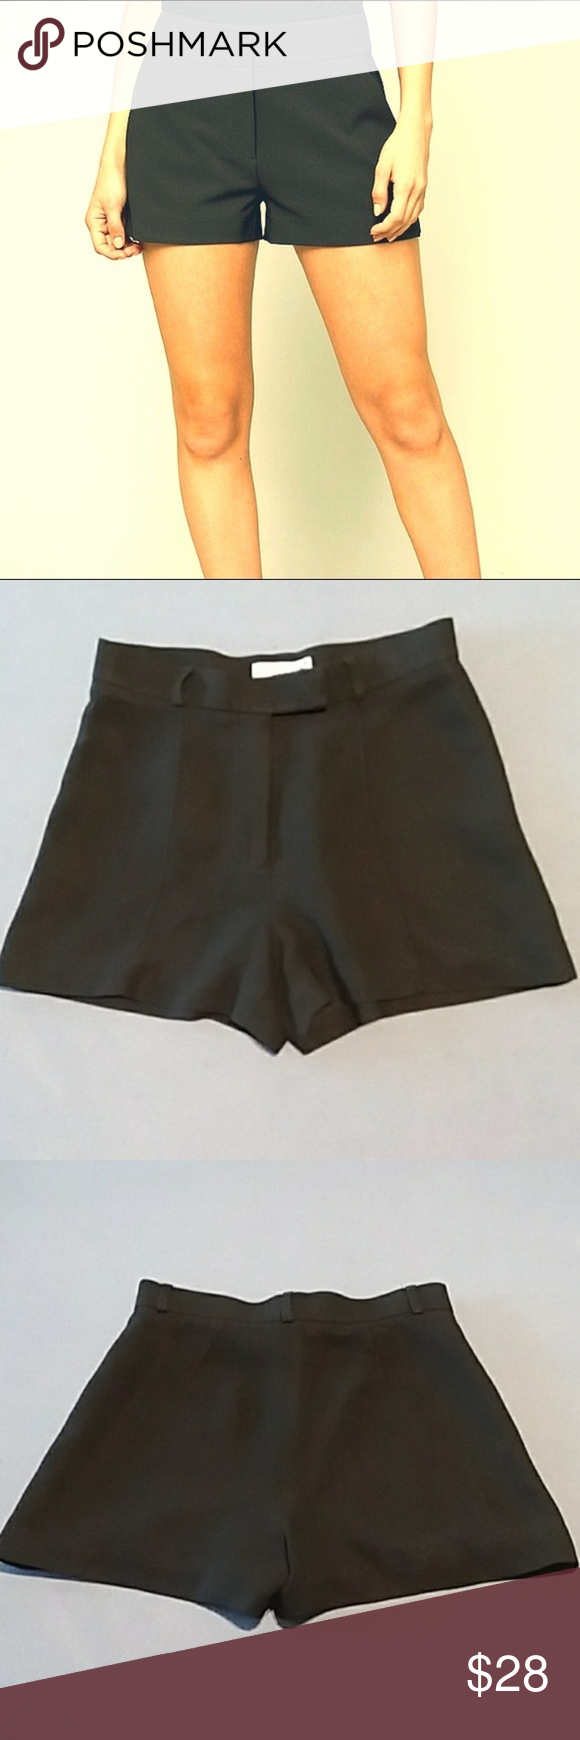 Bebe Black Shorts Cover Photo Is To Show Fit And Similar Style Actual Item Has Belt Loops And Stitch Detail Down Black Short Dress Clothes Design Short Dresses [ 1740 x 580 Pixel ]